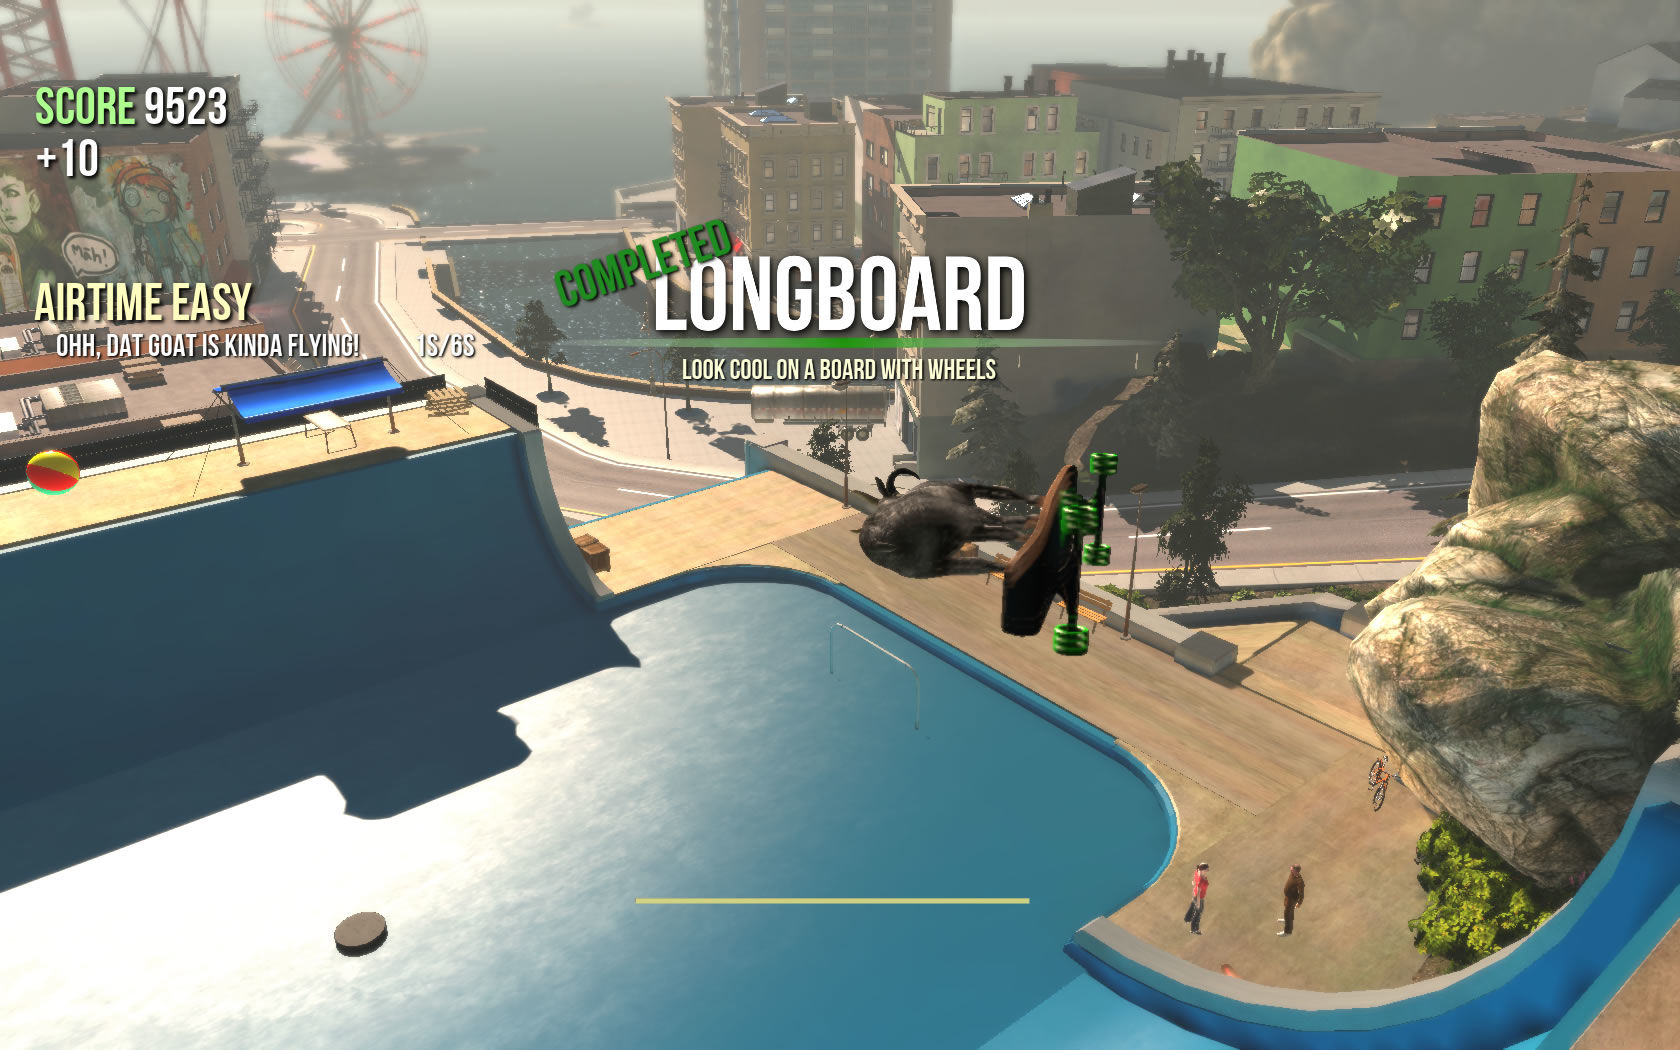 Goat Simulator Windows Performing tricks with the longboard.